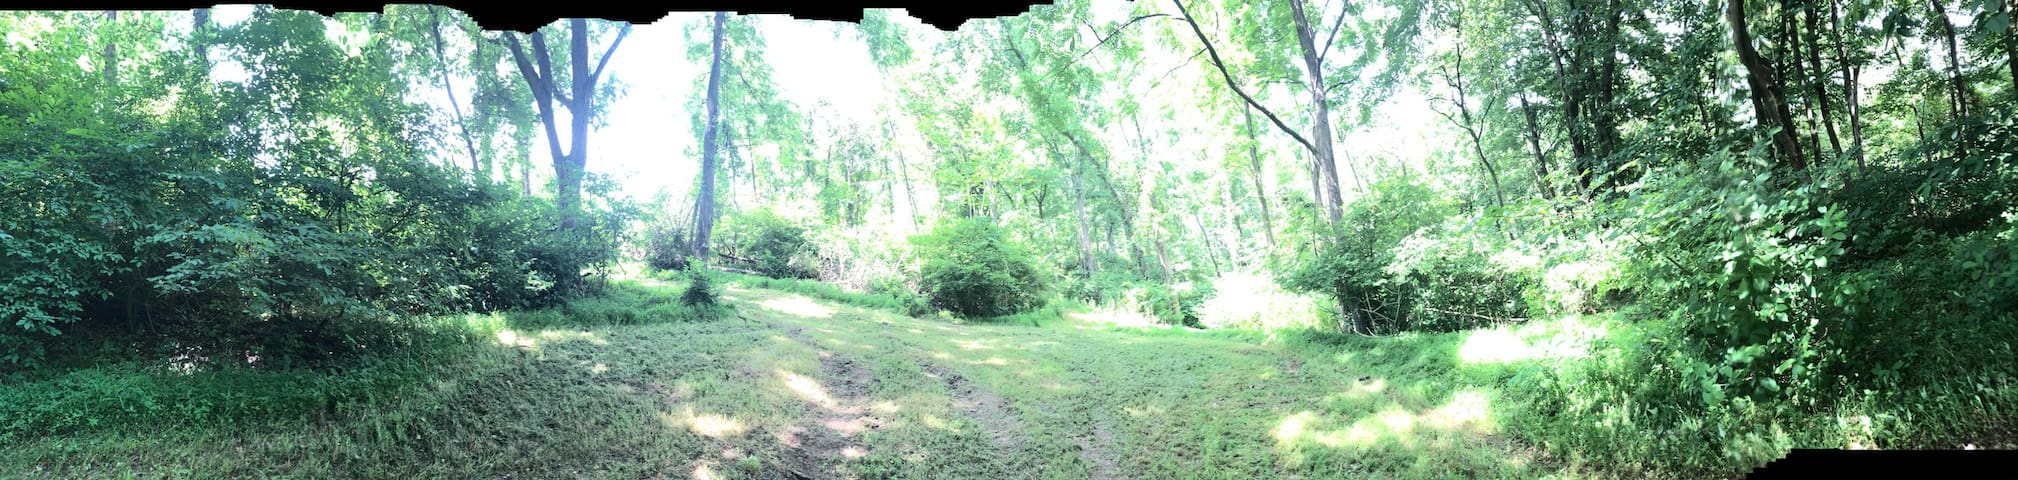 Secluded tent campsite In wooded area with trails.